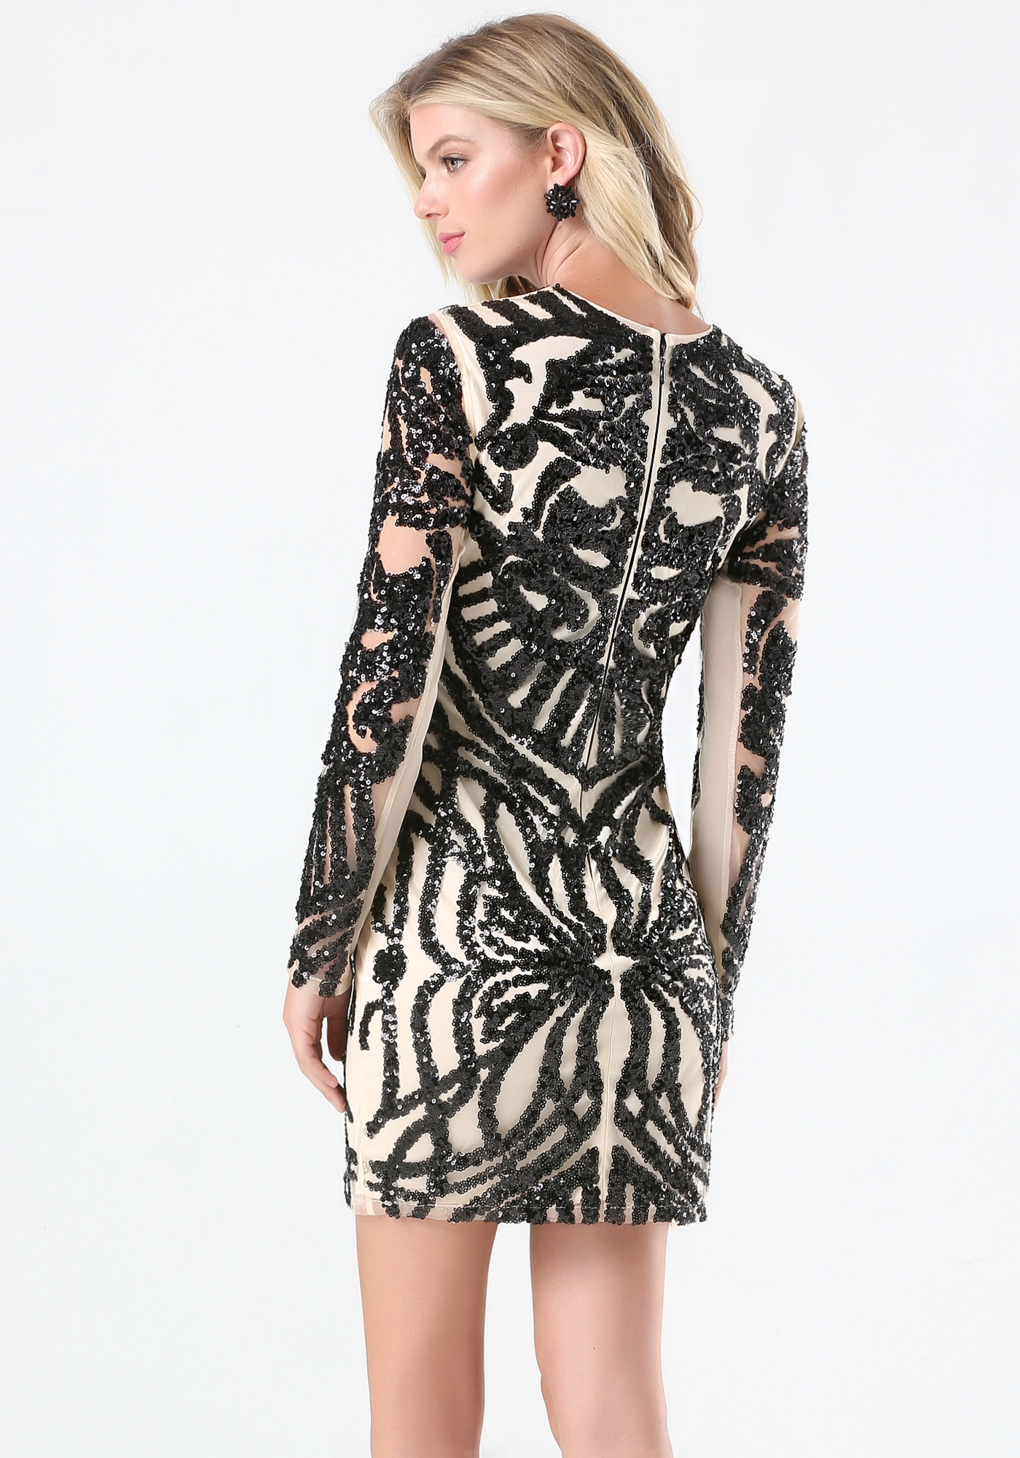 Find great deals on eBay for sequin mesh dress. Shop with confidence.